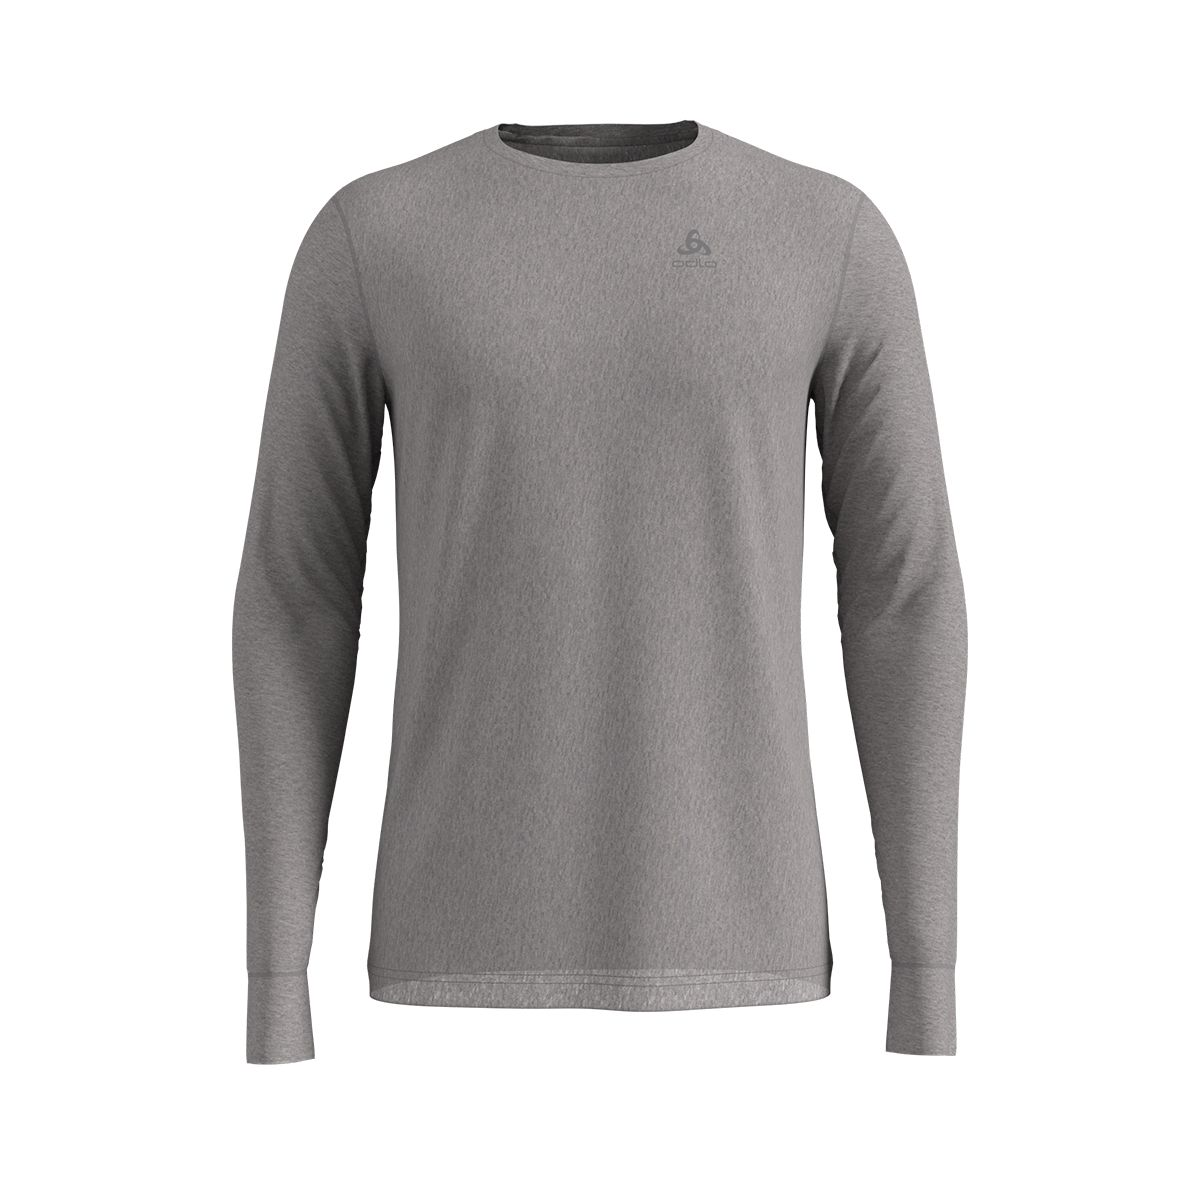 NATURAL MERINO WARM SUW TOP long sleeve base layer